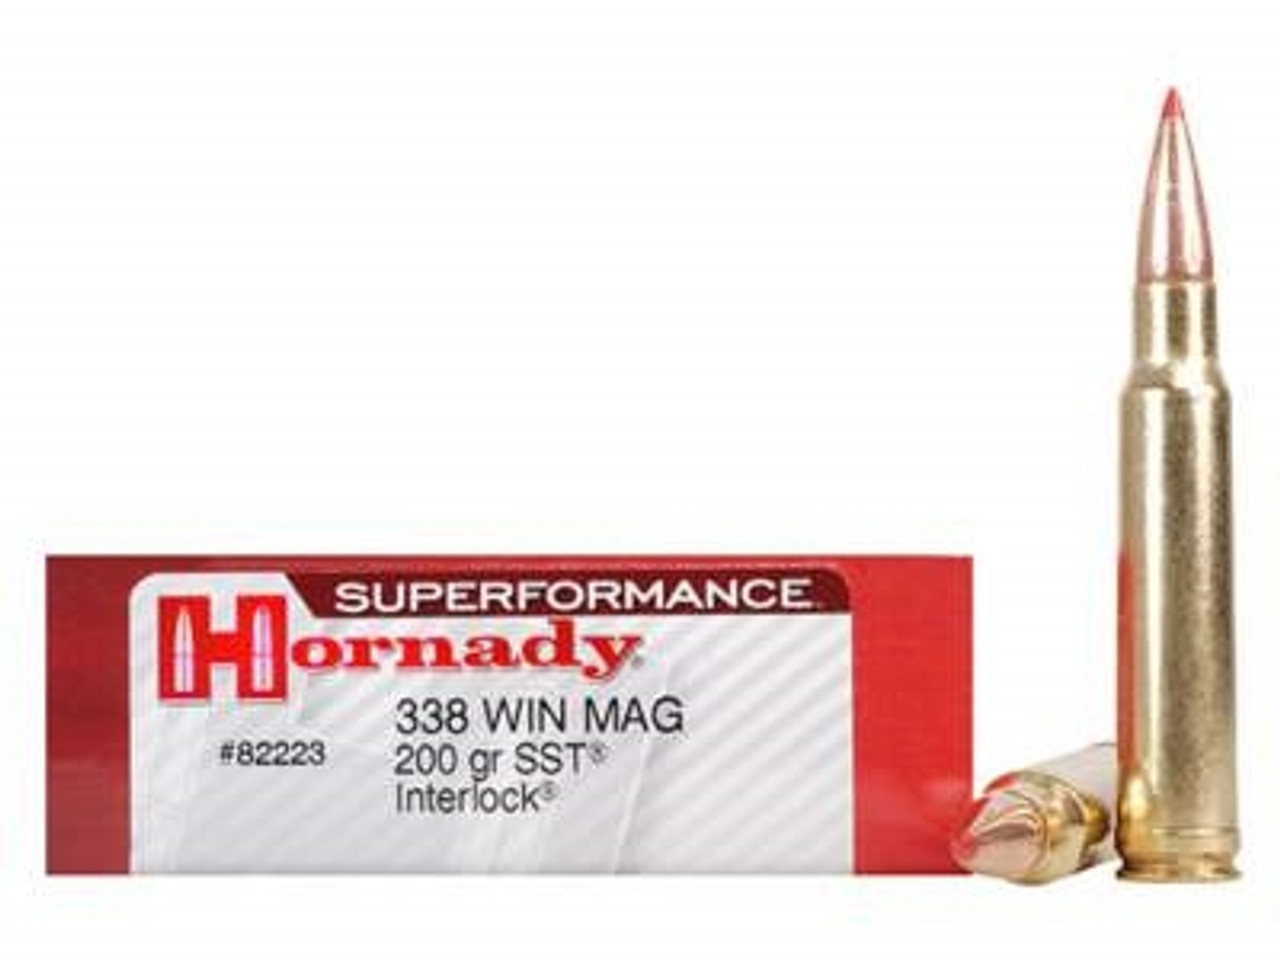 Hornady 338 Win Mag Superformance H82223 200 gr SST 20 rounds